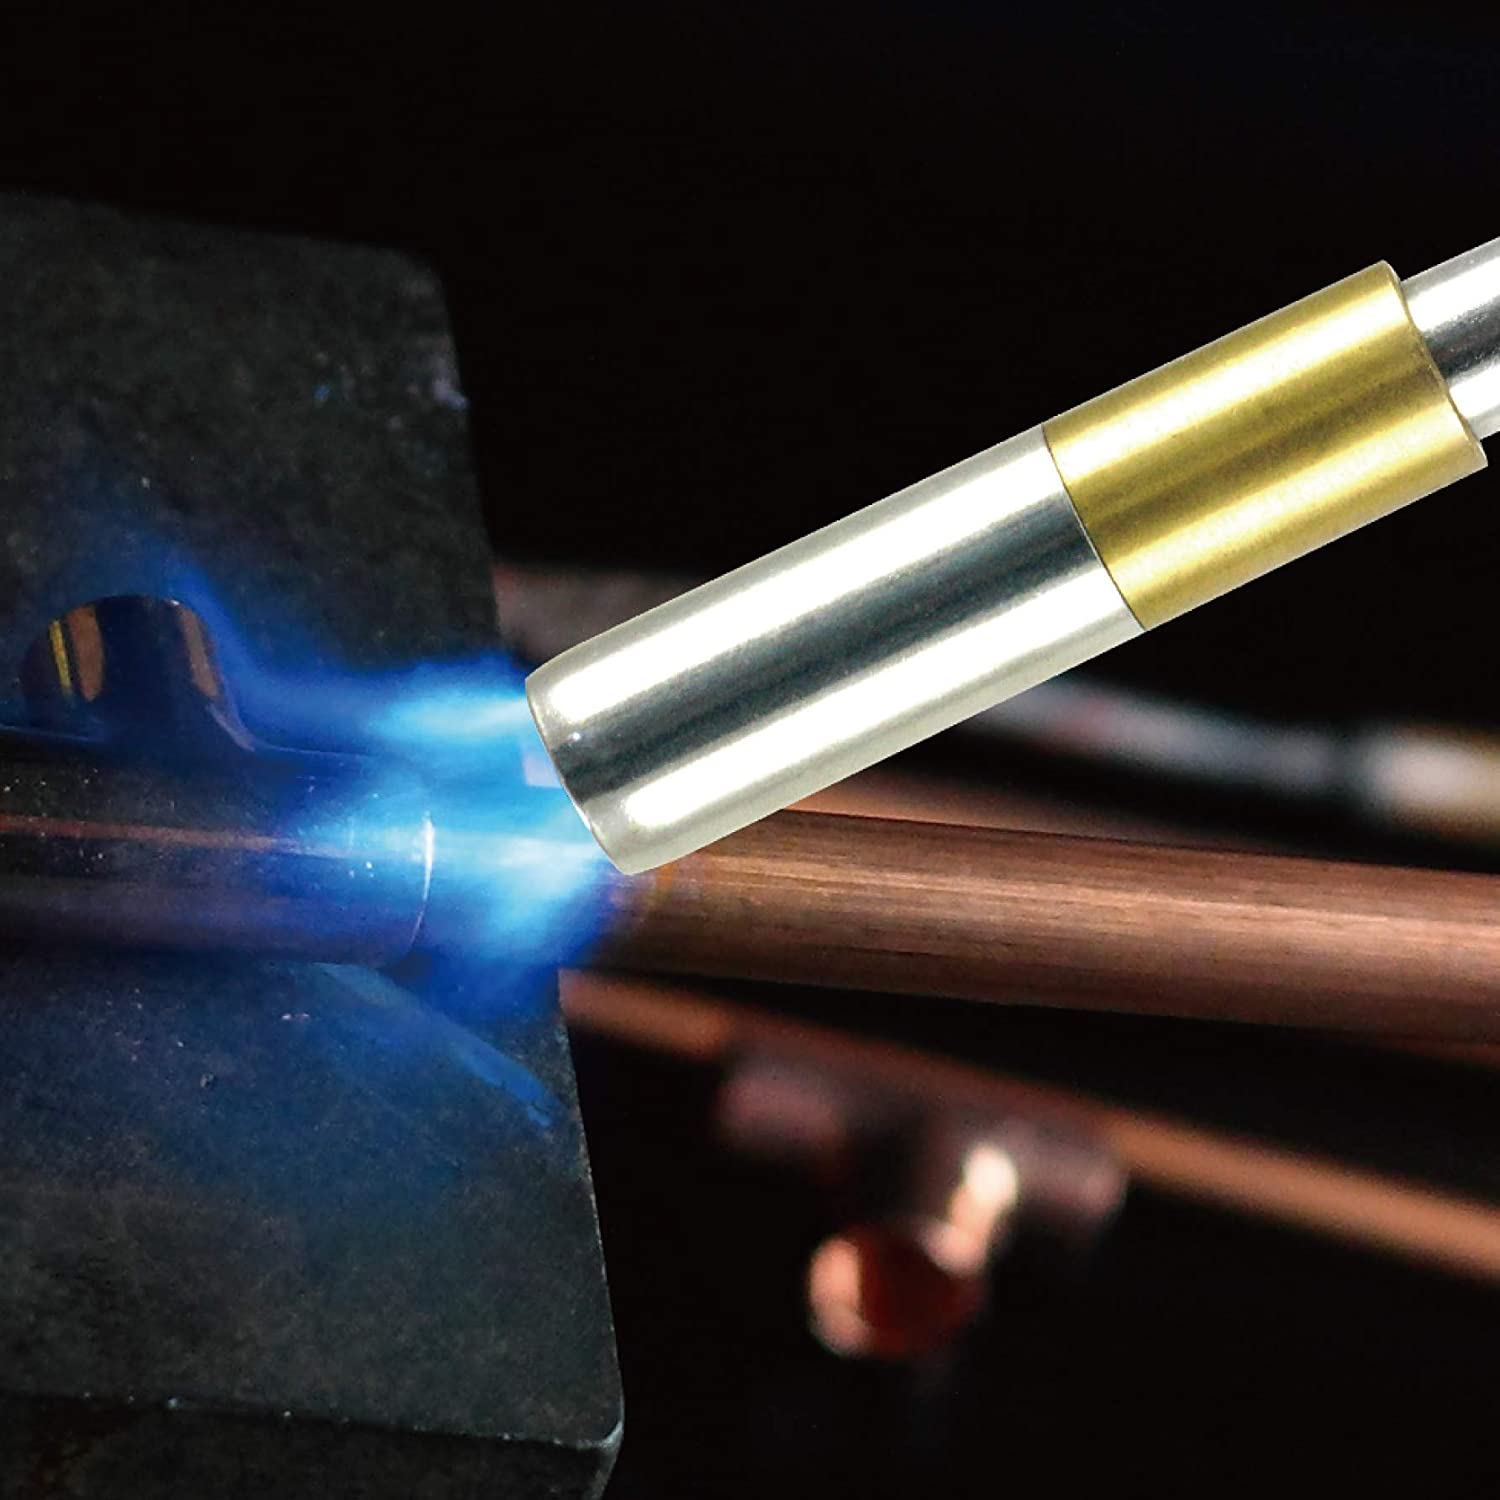 BLUEFIRE HZ-8394 Trigger Start 3 Hose Gas Welding Torch Replaceable Super Swirl Flame Tip Propane Fuel by MAPP MAP Pro